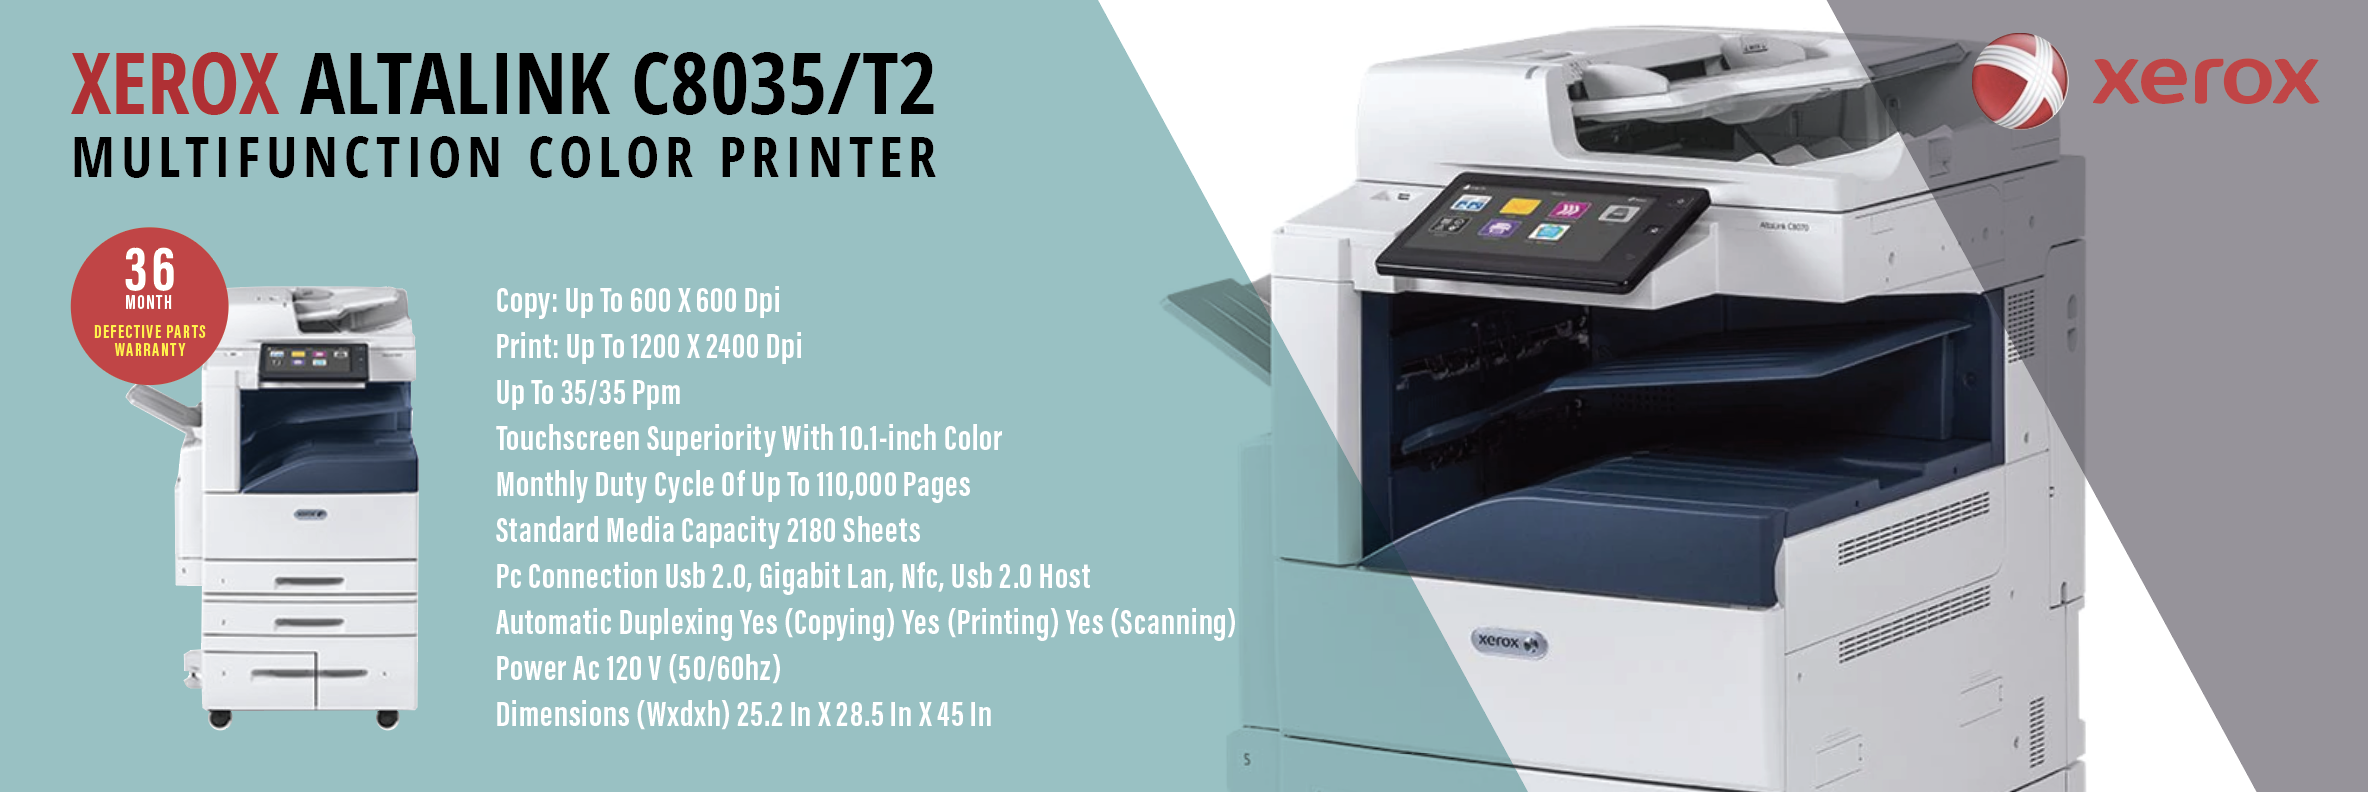 Xerox AltaLink C8035/T2 - Multifunction Color Printer